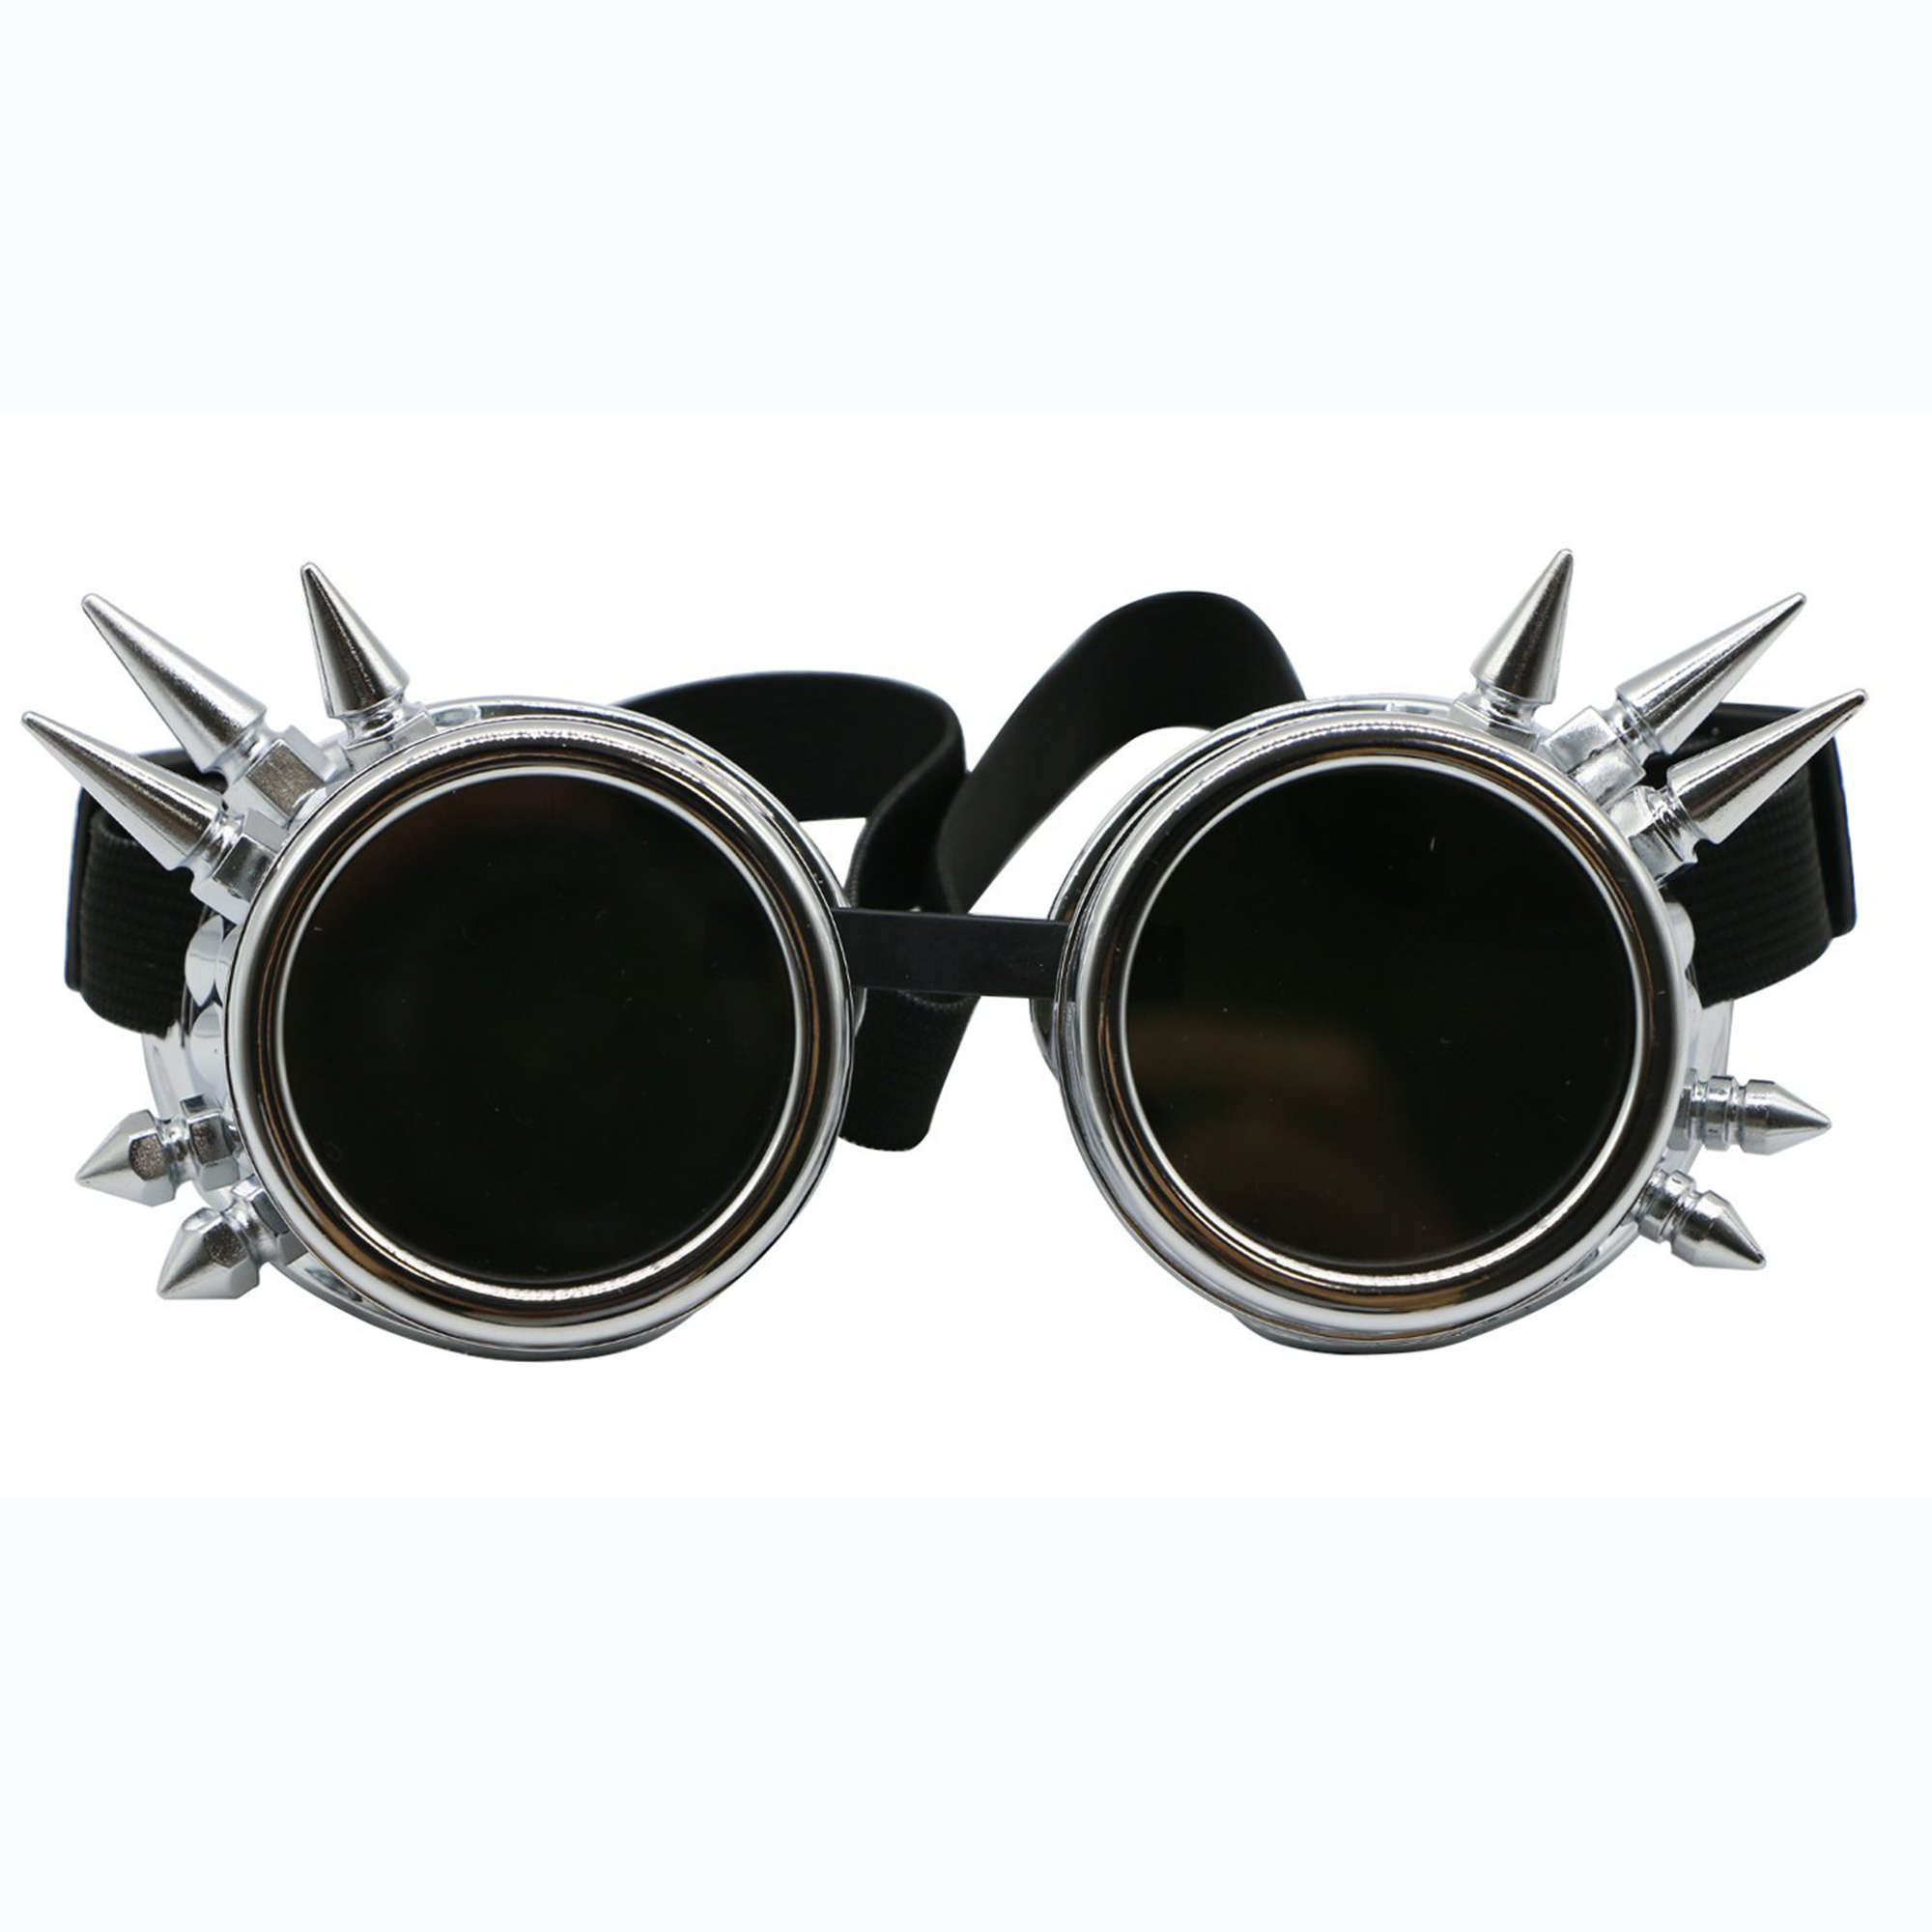 C.F.GOGGLE Vintage Studs Steampunk Goggles Welding Gothic Black Lens Cosplay